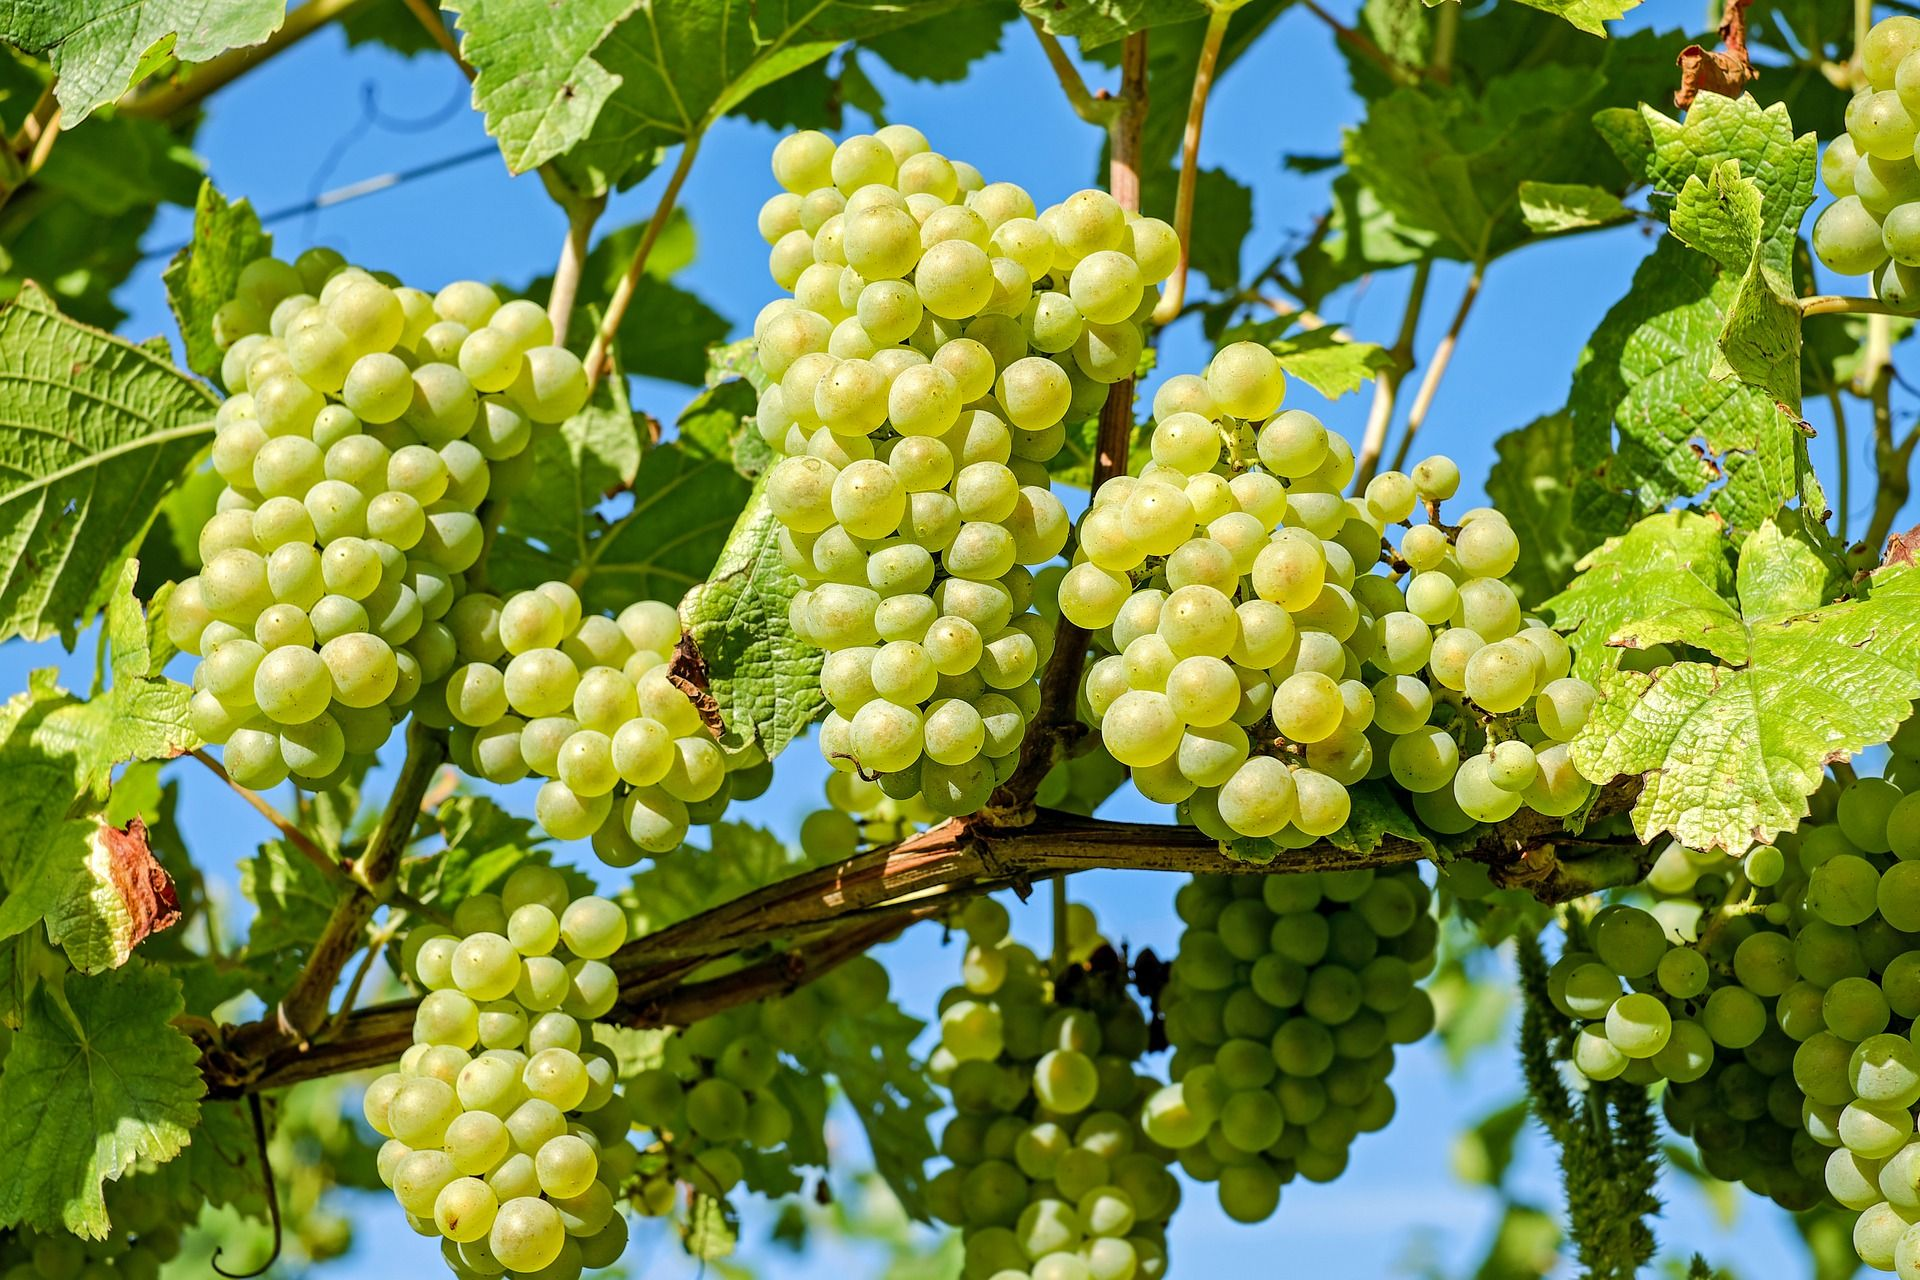 Effect of Postharvest Defoliation on Carbon and Nitrogen Resources of High-Yielding Sauvignon blanc Grapevines